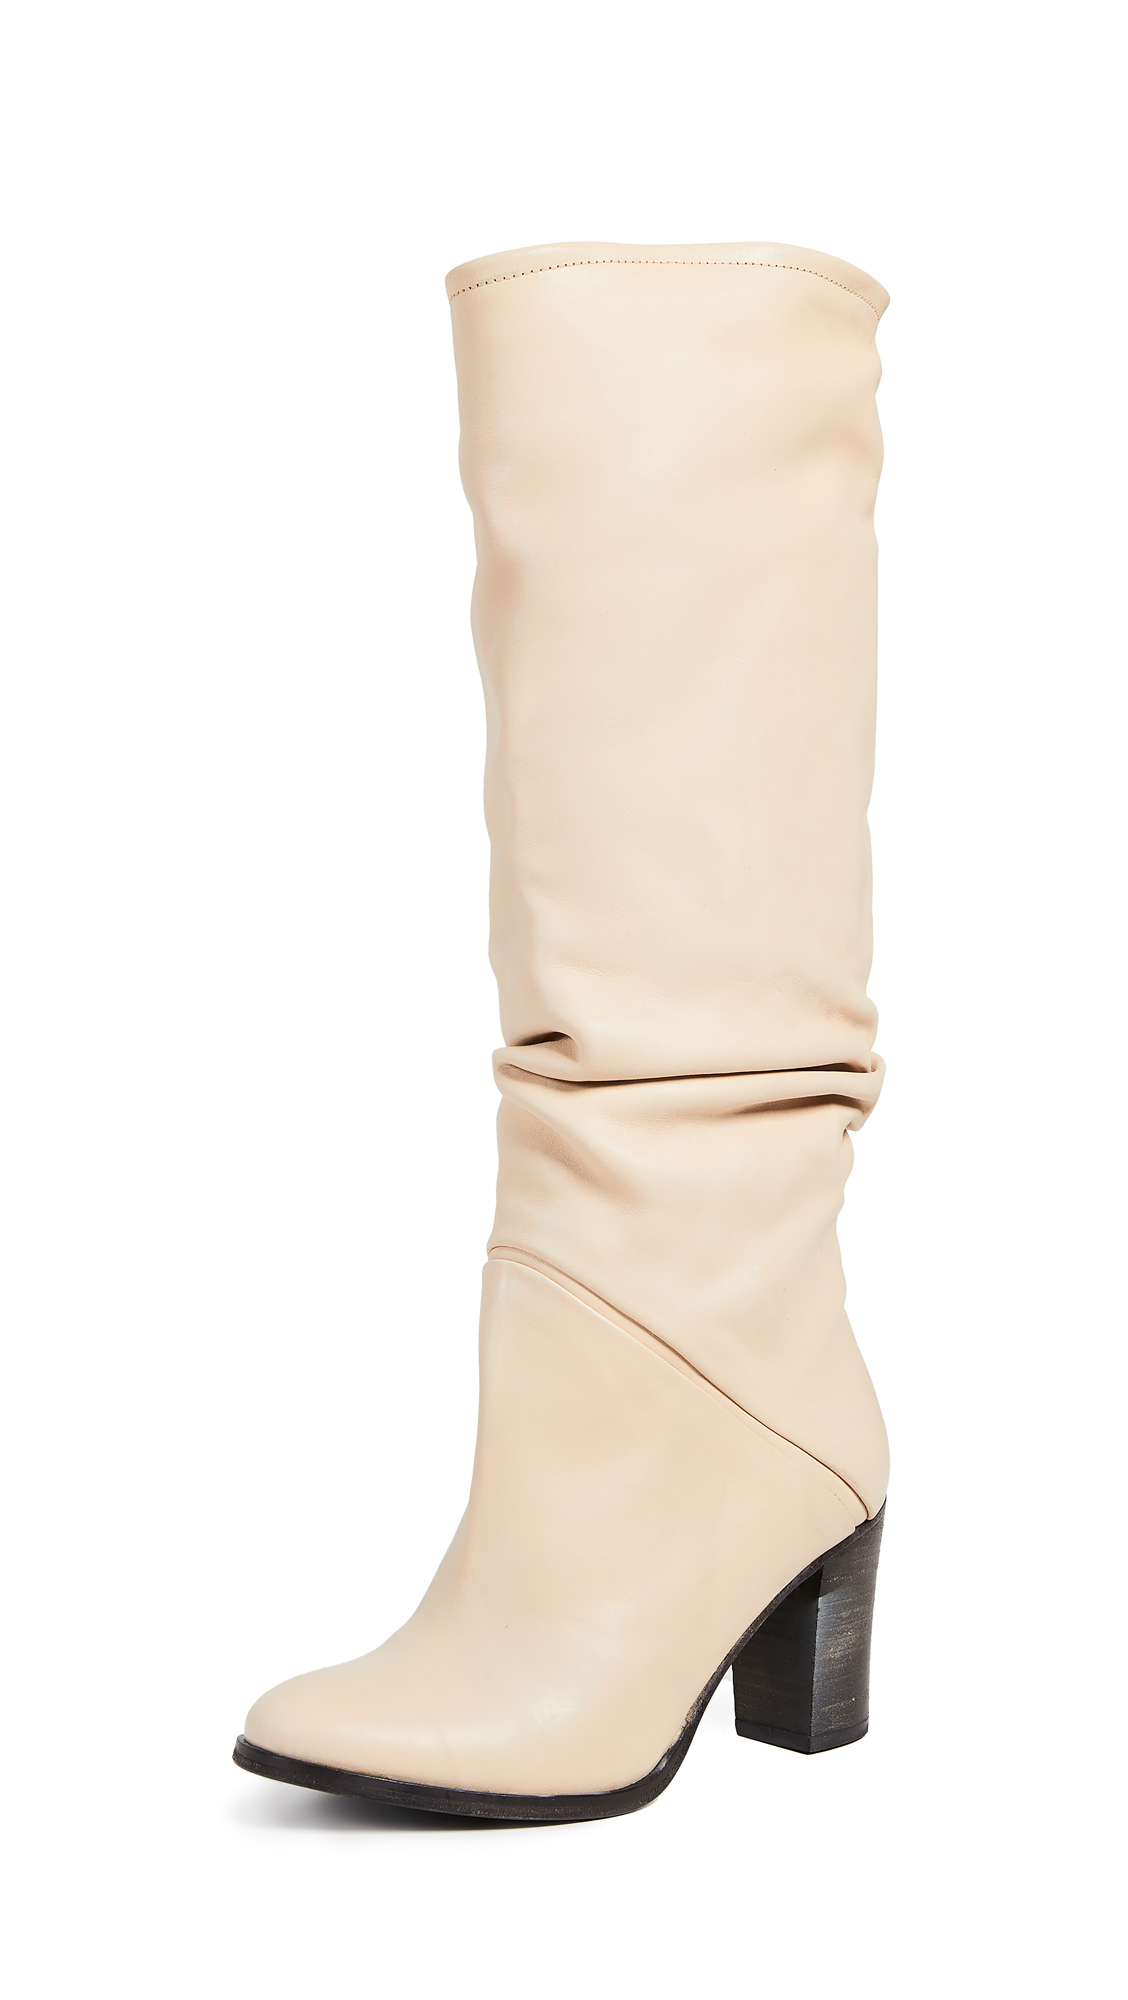 Free People Tennison Tall Boots - Beige